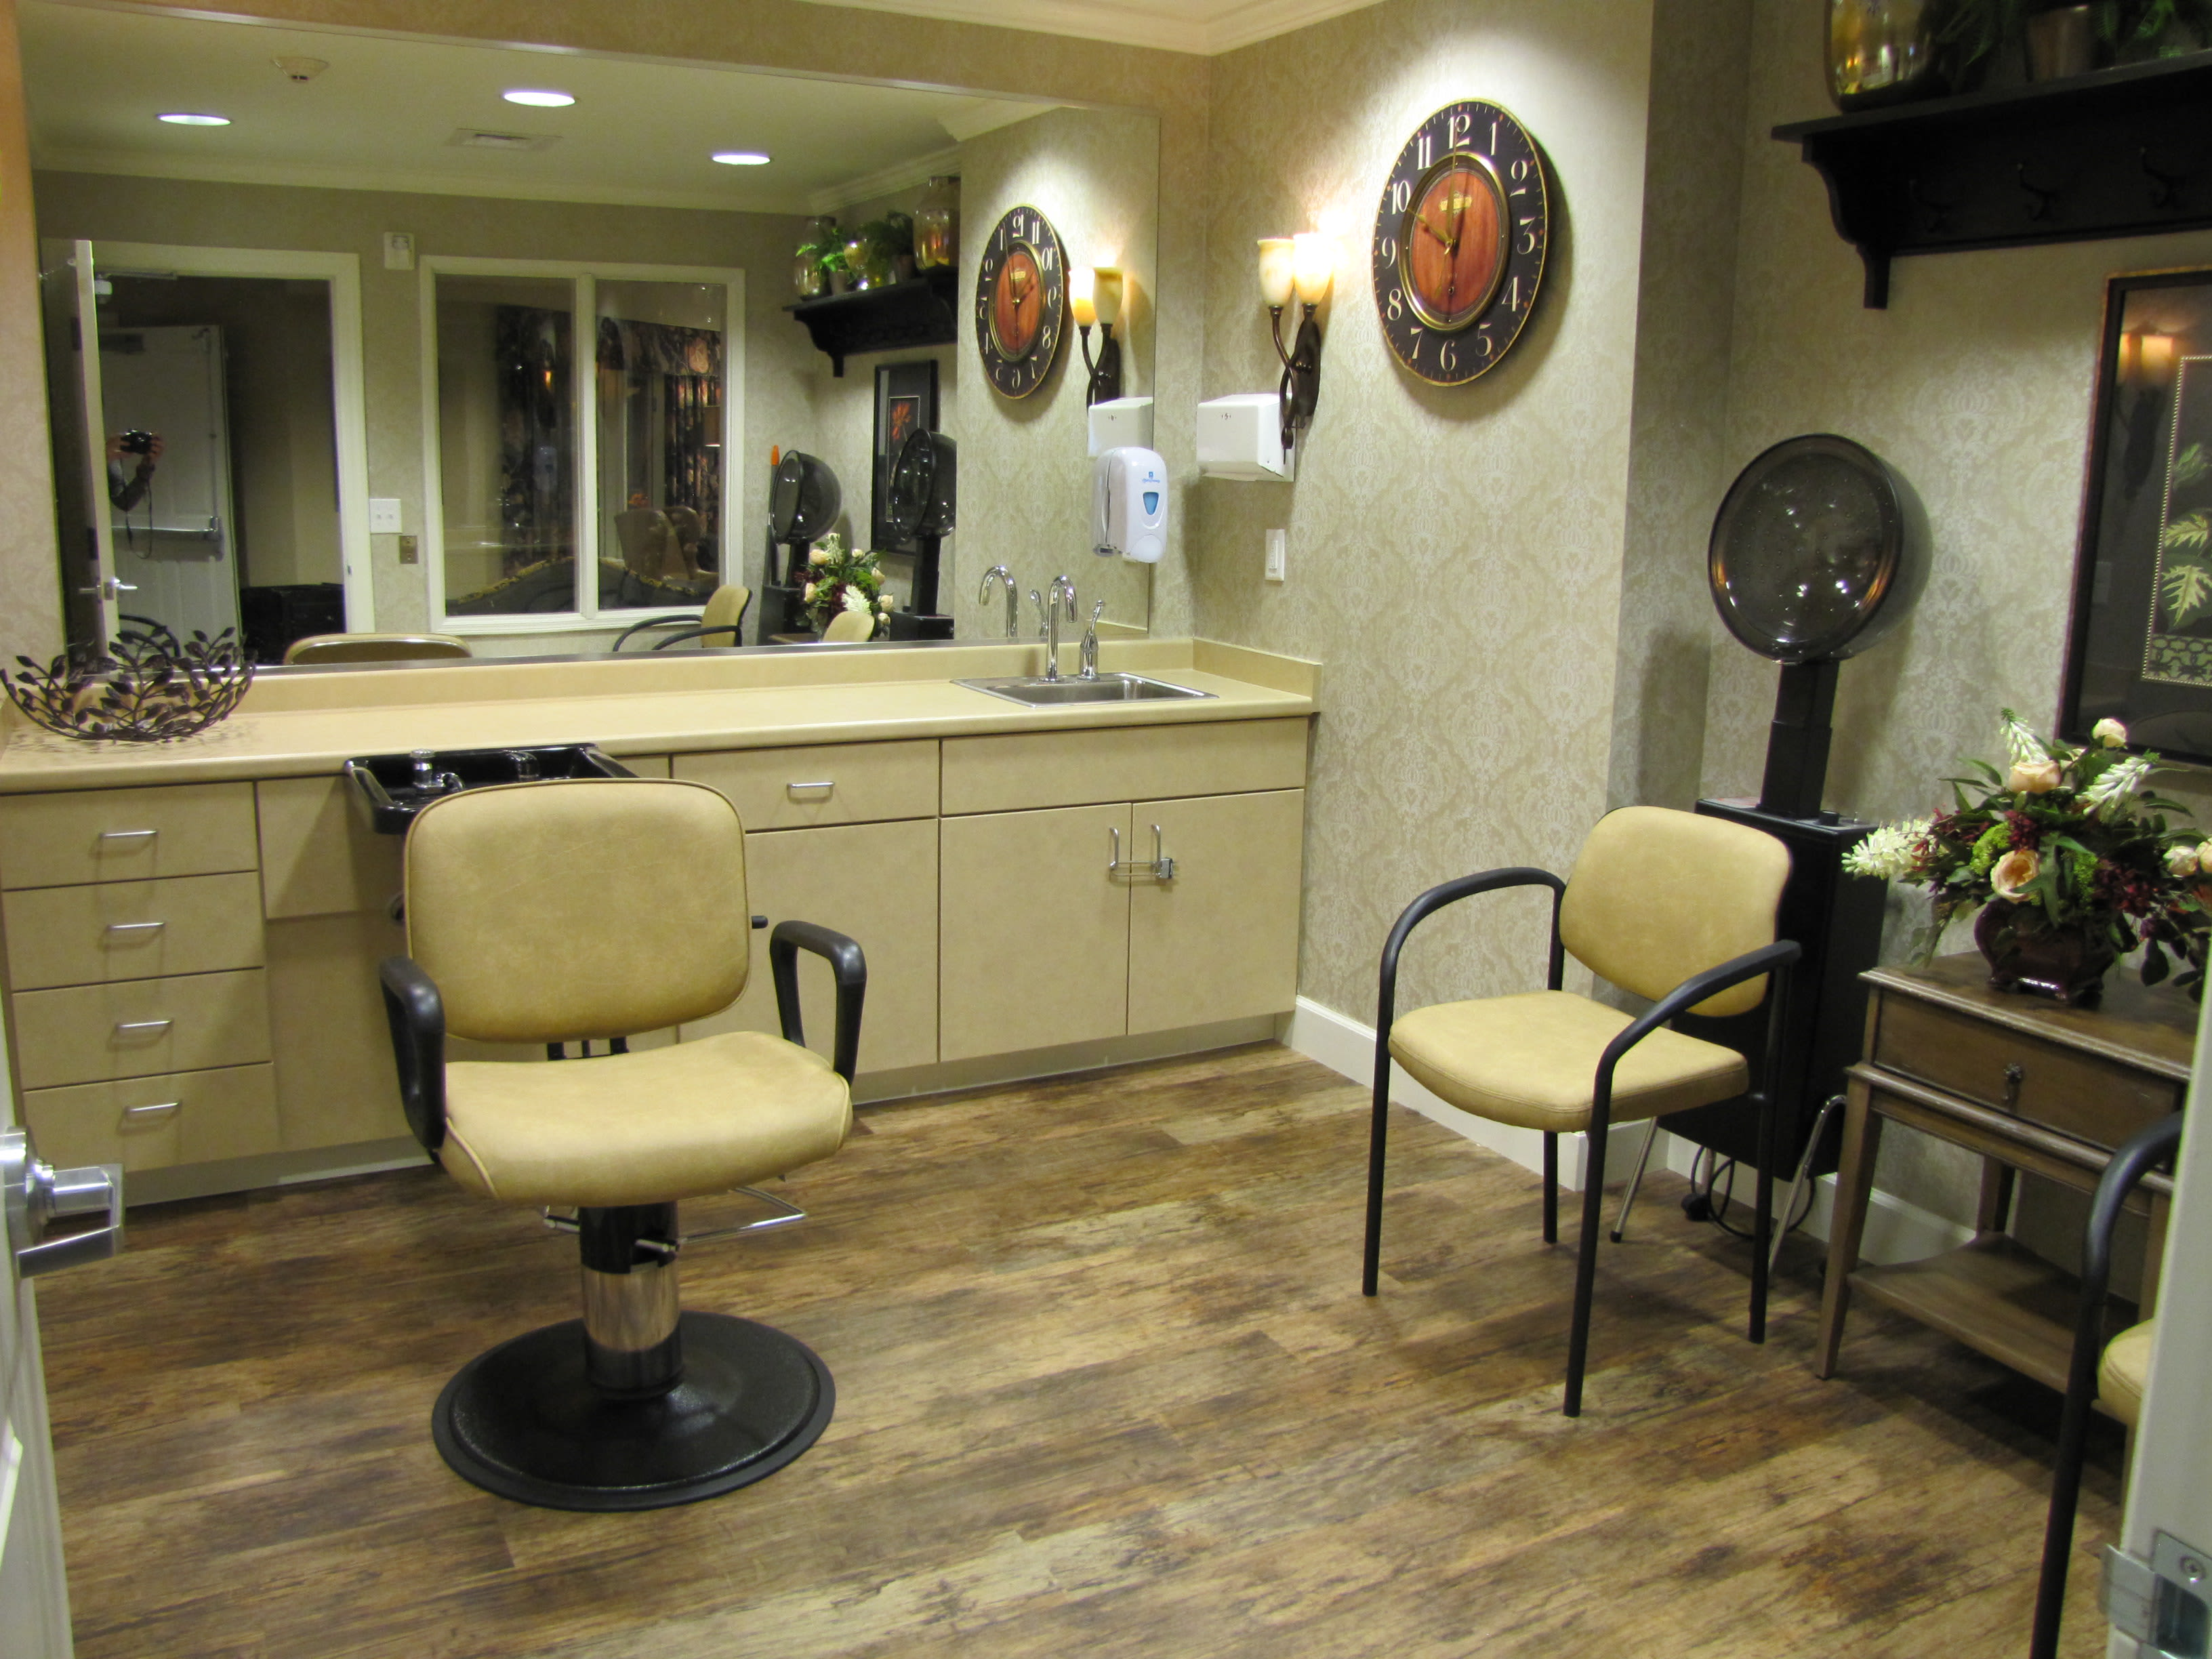 Edgemont Place Alzheimer's Special Care Center offers a barber shop in Blaine, Minnesota